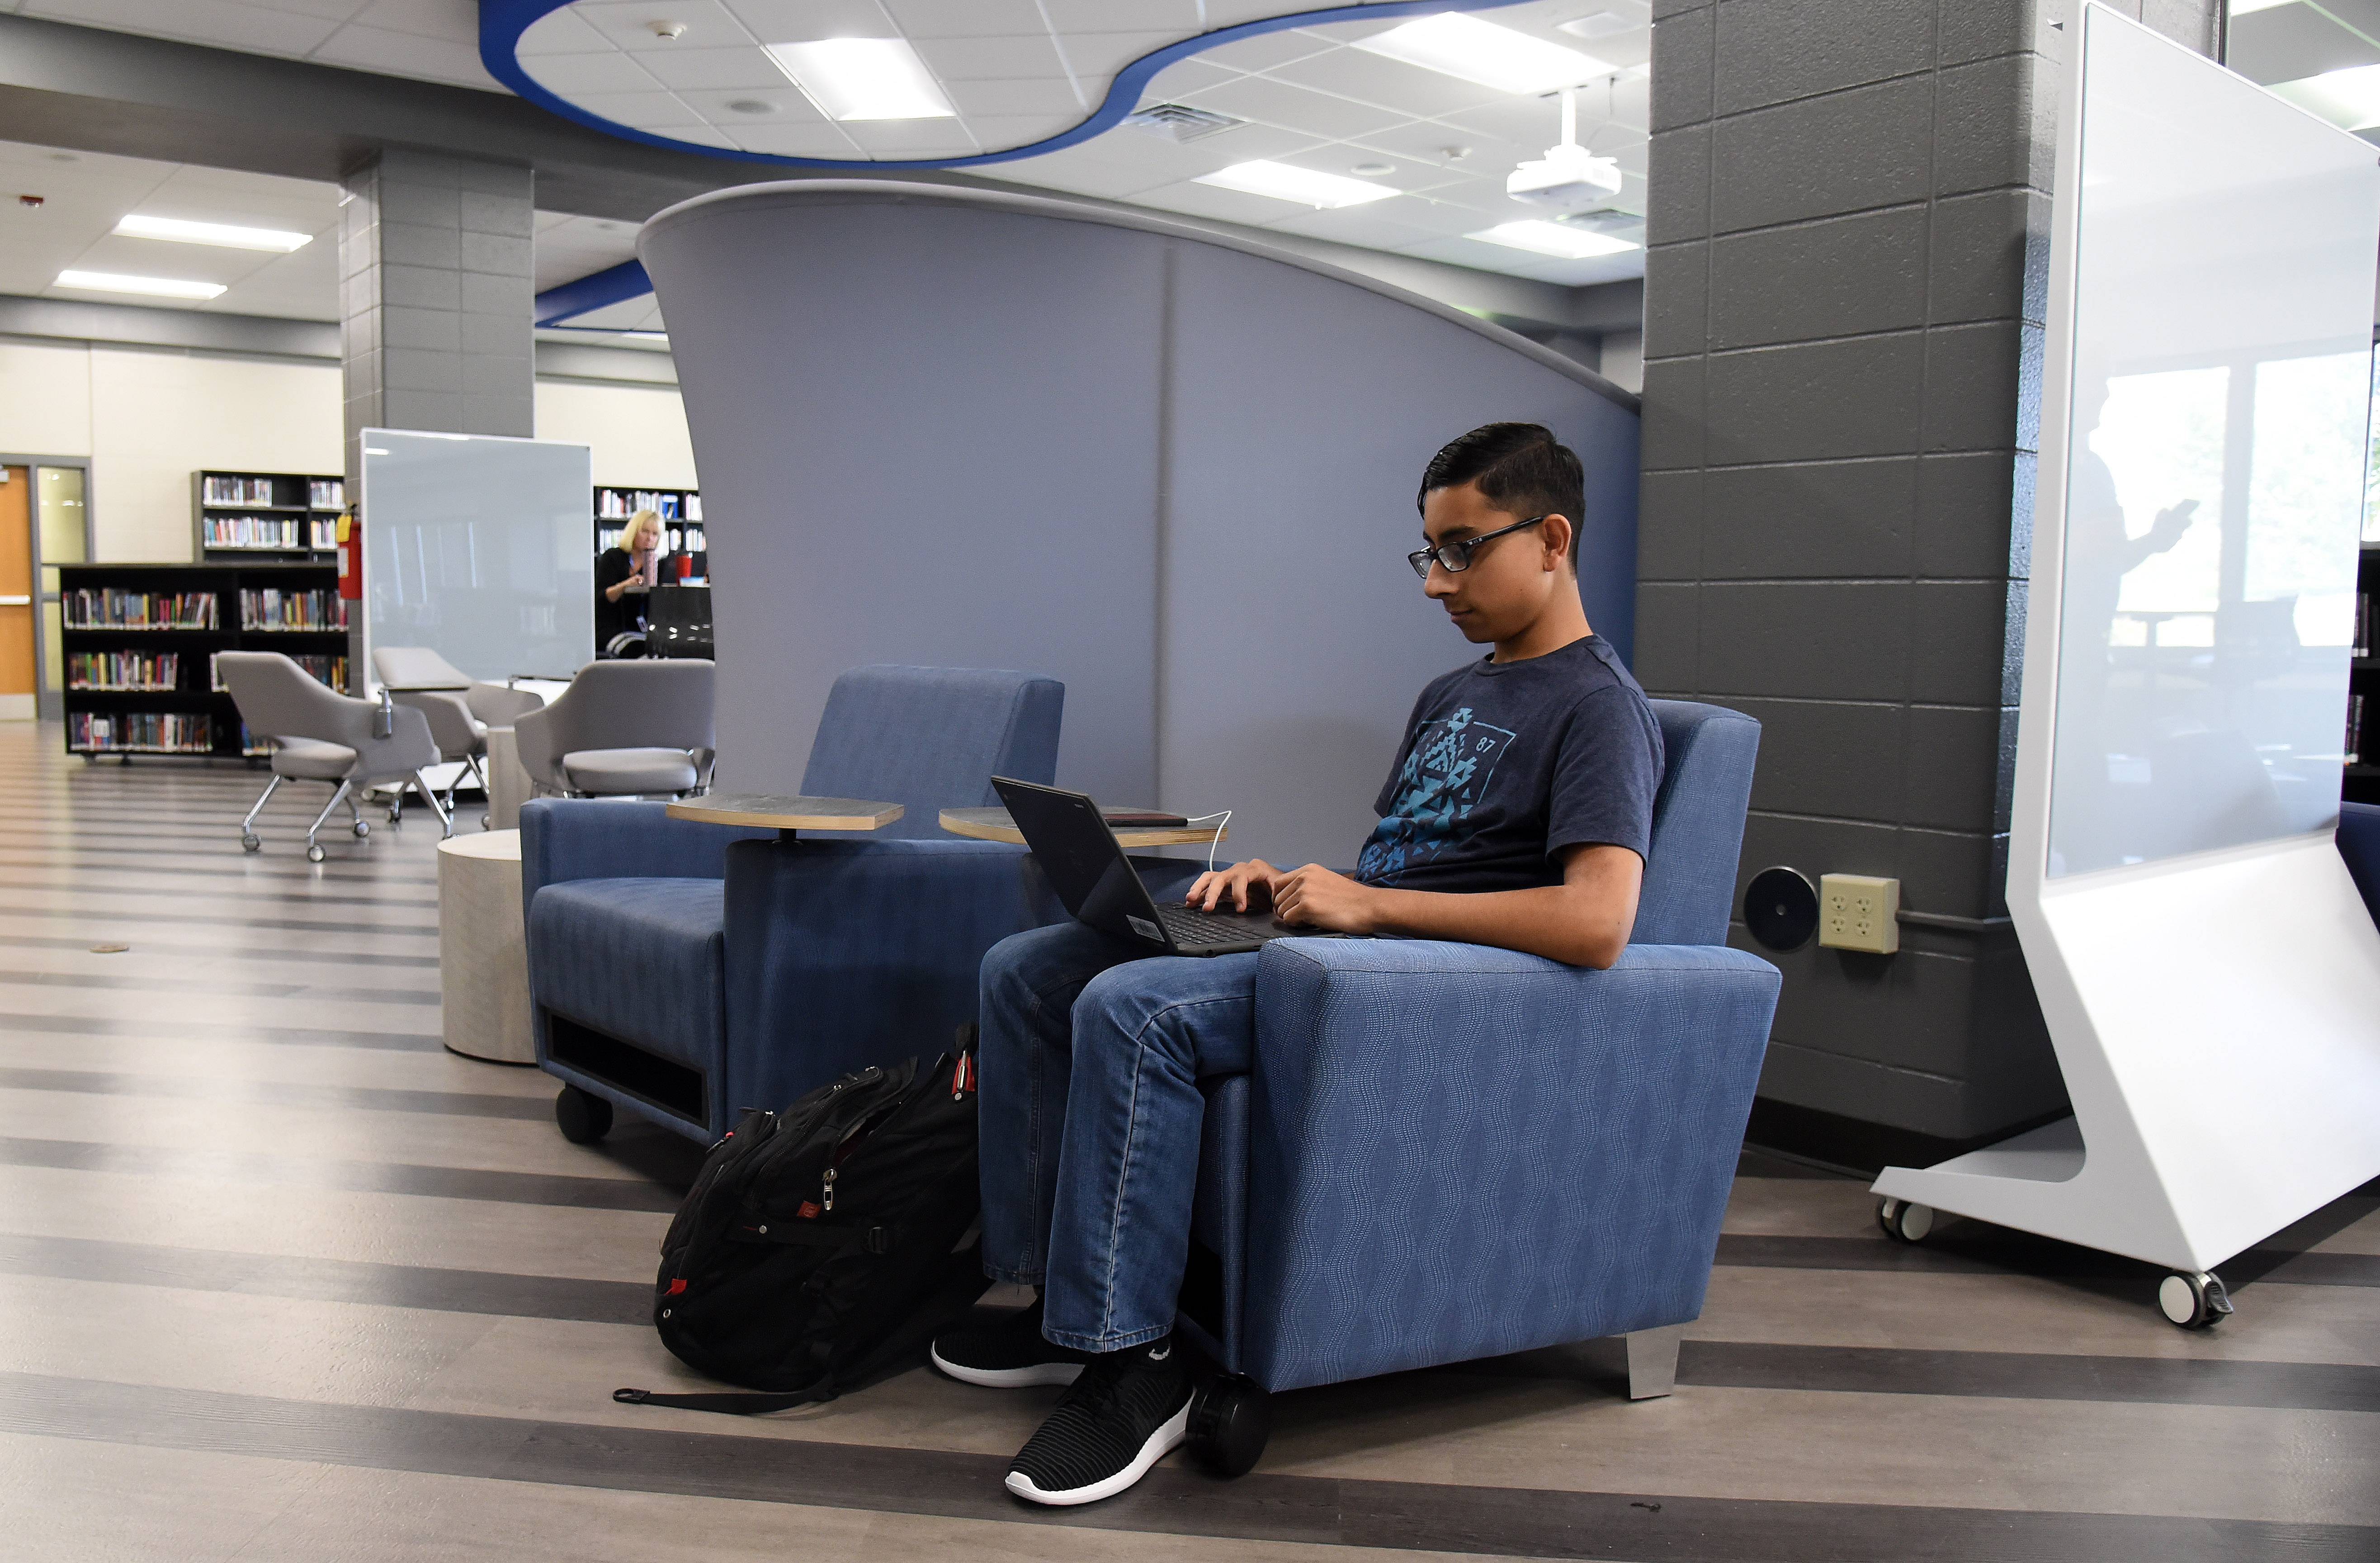 Senior Shaaz Syed works in Central High School's recently remodeled library media center Wednesday in Burlington. The school debuted new facilities this week, including new classrooms and modern weight training and cardio fitness areas.